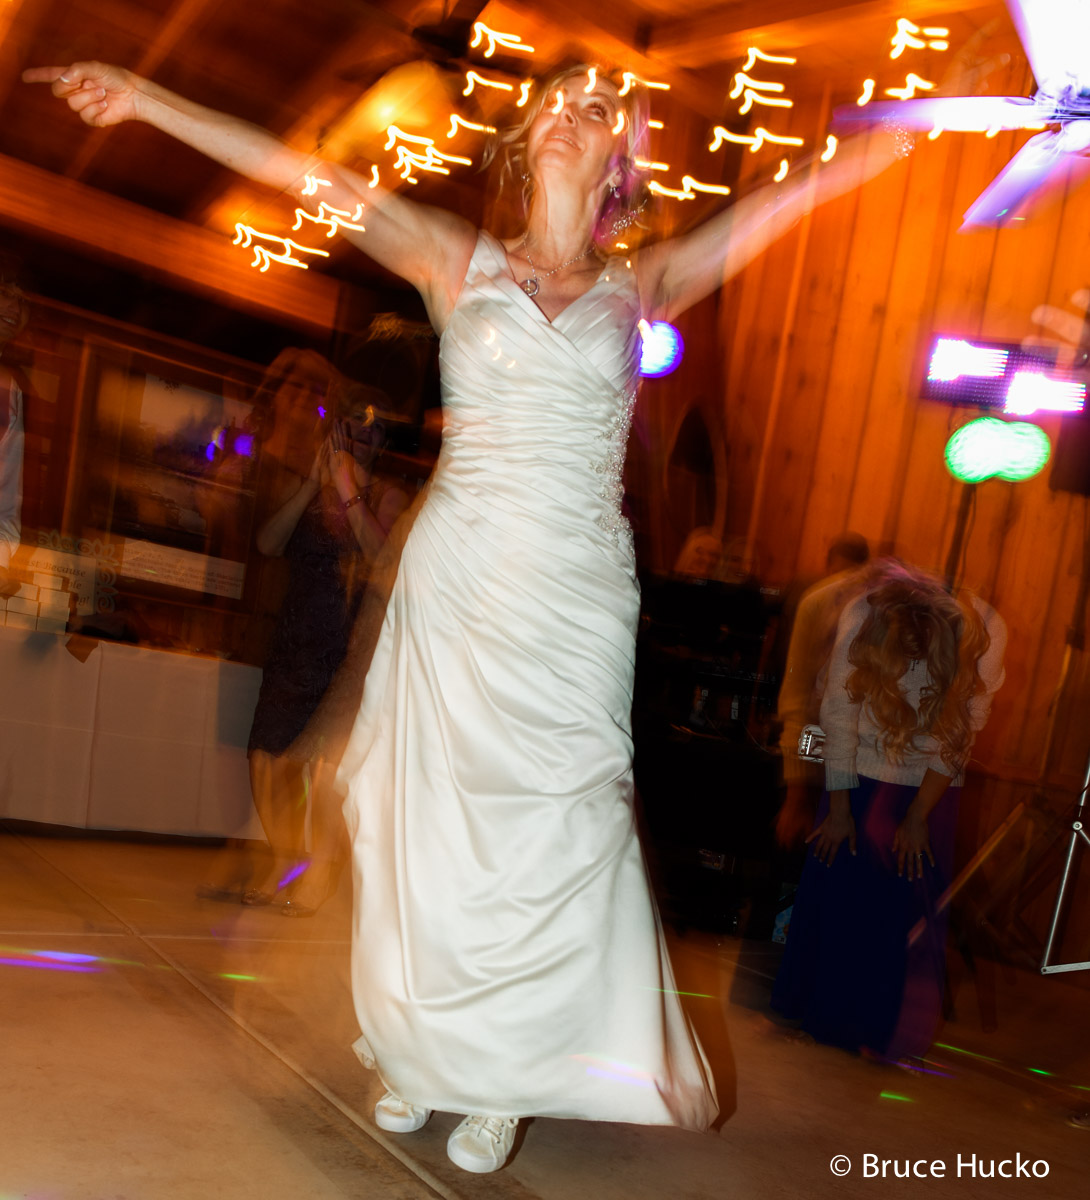 Hucko Wedding Sampler,Wedding Photography by Hucko,Wedding for Web, photo